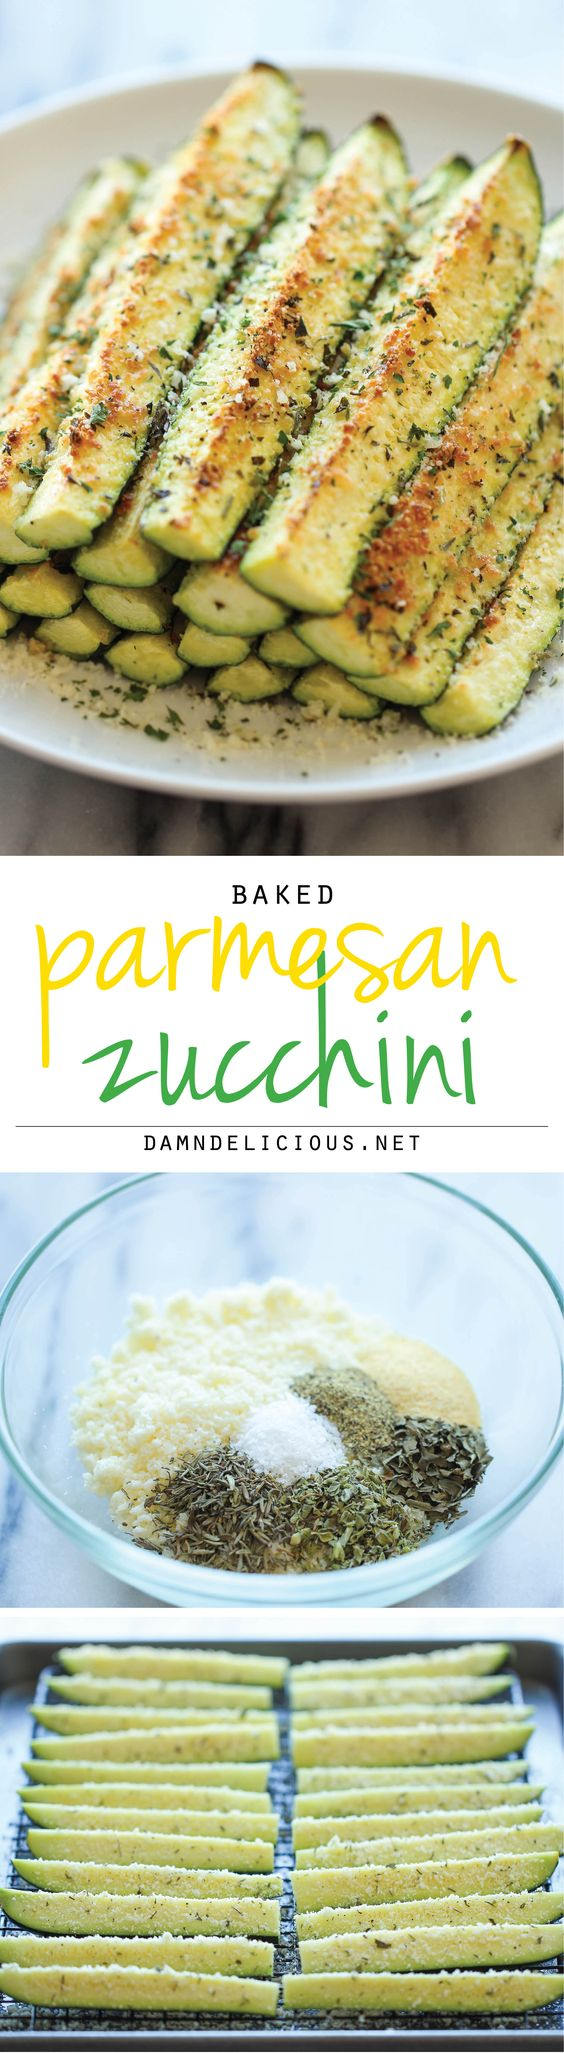 Baked Parmesan Zucchini - Crisp, tender zucchini sticks oven-roasted to perfection. It's healthy, nutritious and completely addictive! If you looking for more clean eating recipes check out-> yummspiration.com We have some Vegan & Raw recipes too :) We are also on facebook.com/yummspiration